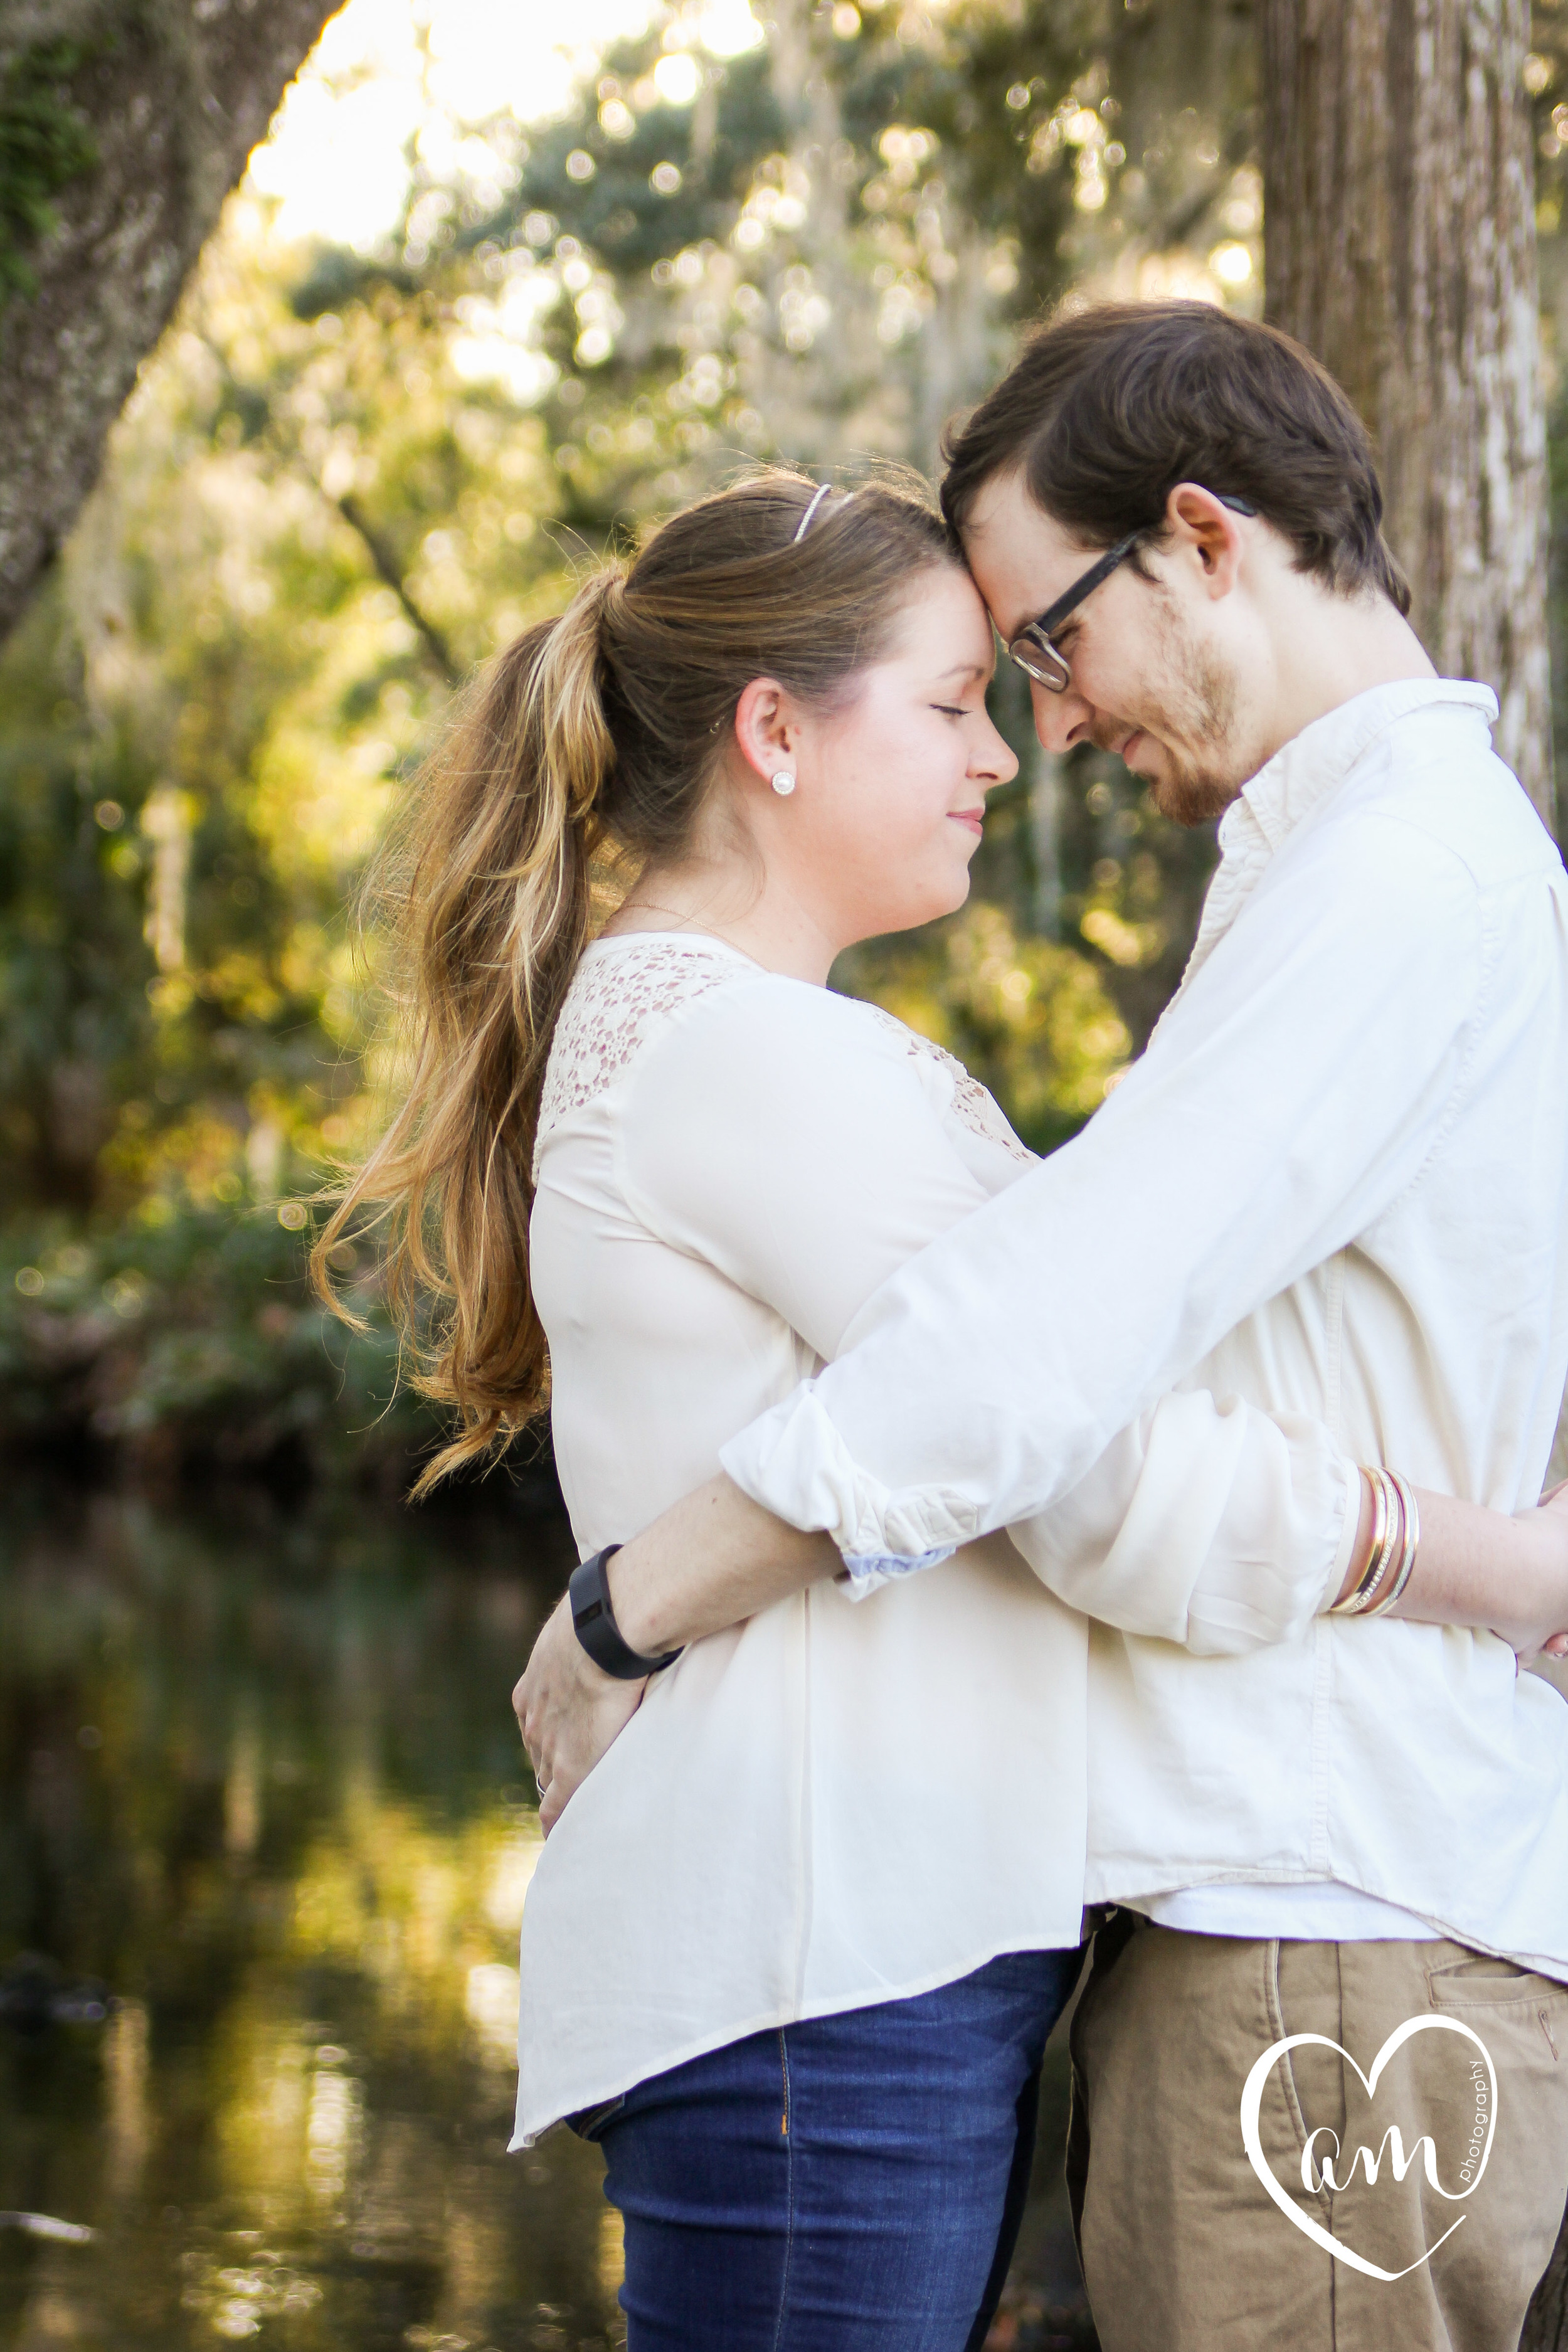 Sweet couple during an engagement photography session in Orlando